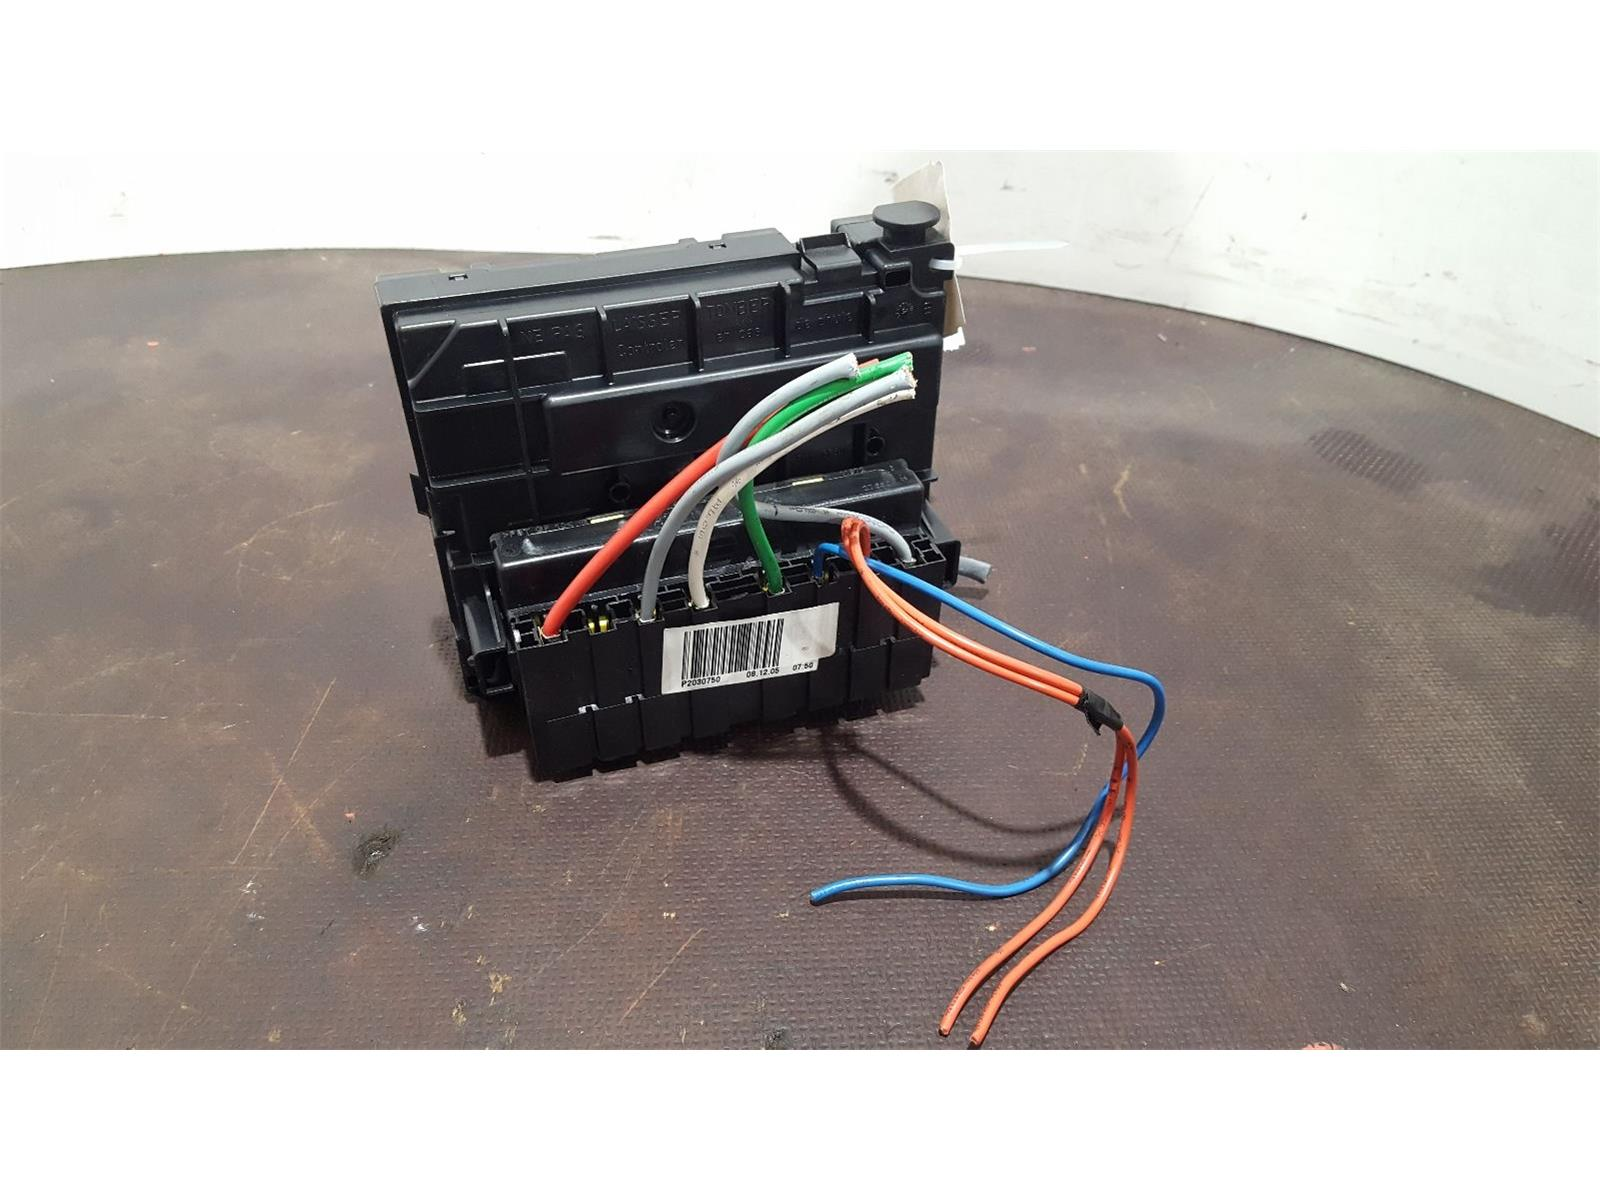 Peugeot 307 2005 To 2008 S Fuse And Relay Box 1 Used Spare Parts Location Hatchback At Combellack Vehicle Recyclers